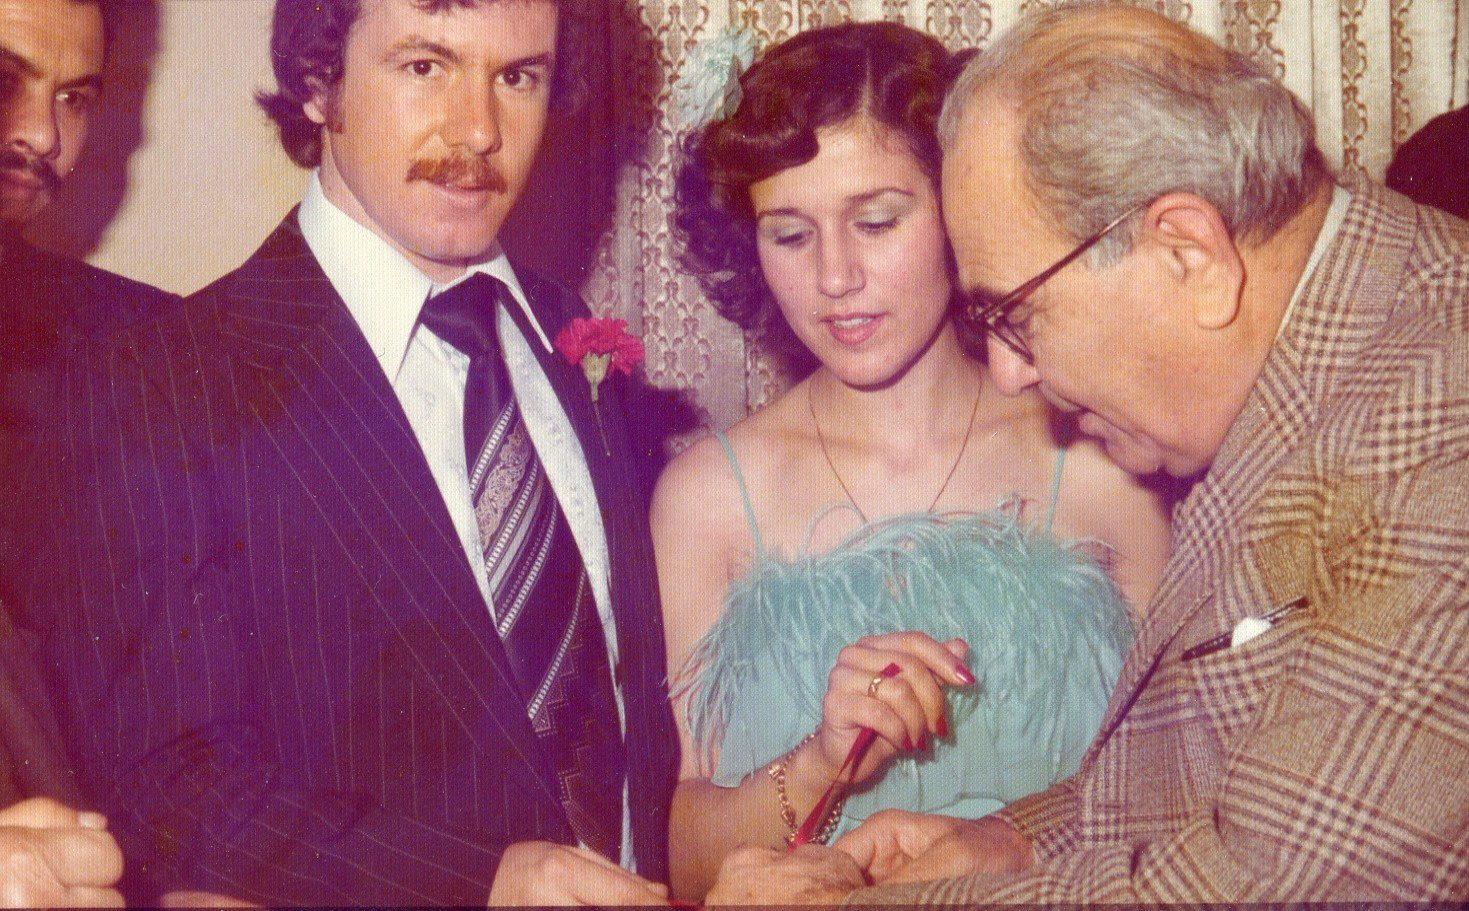 Mum and dad at their engagement party in London, 1977.